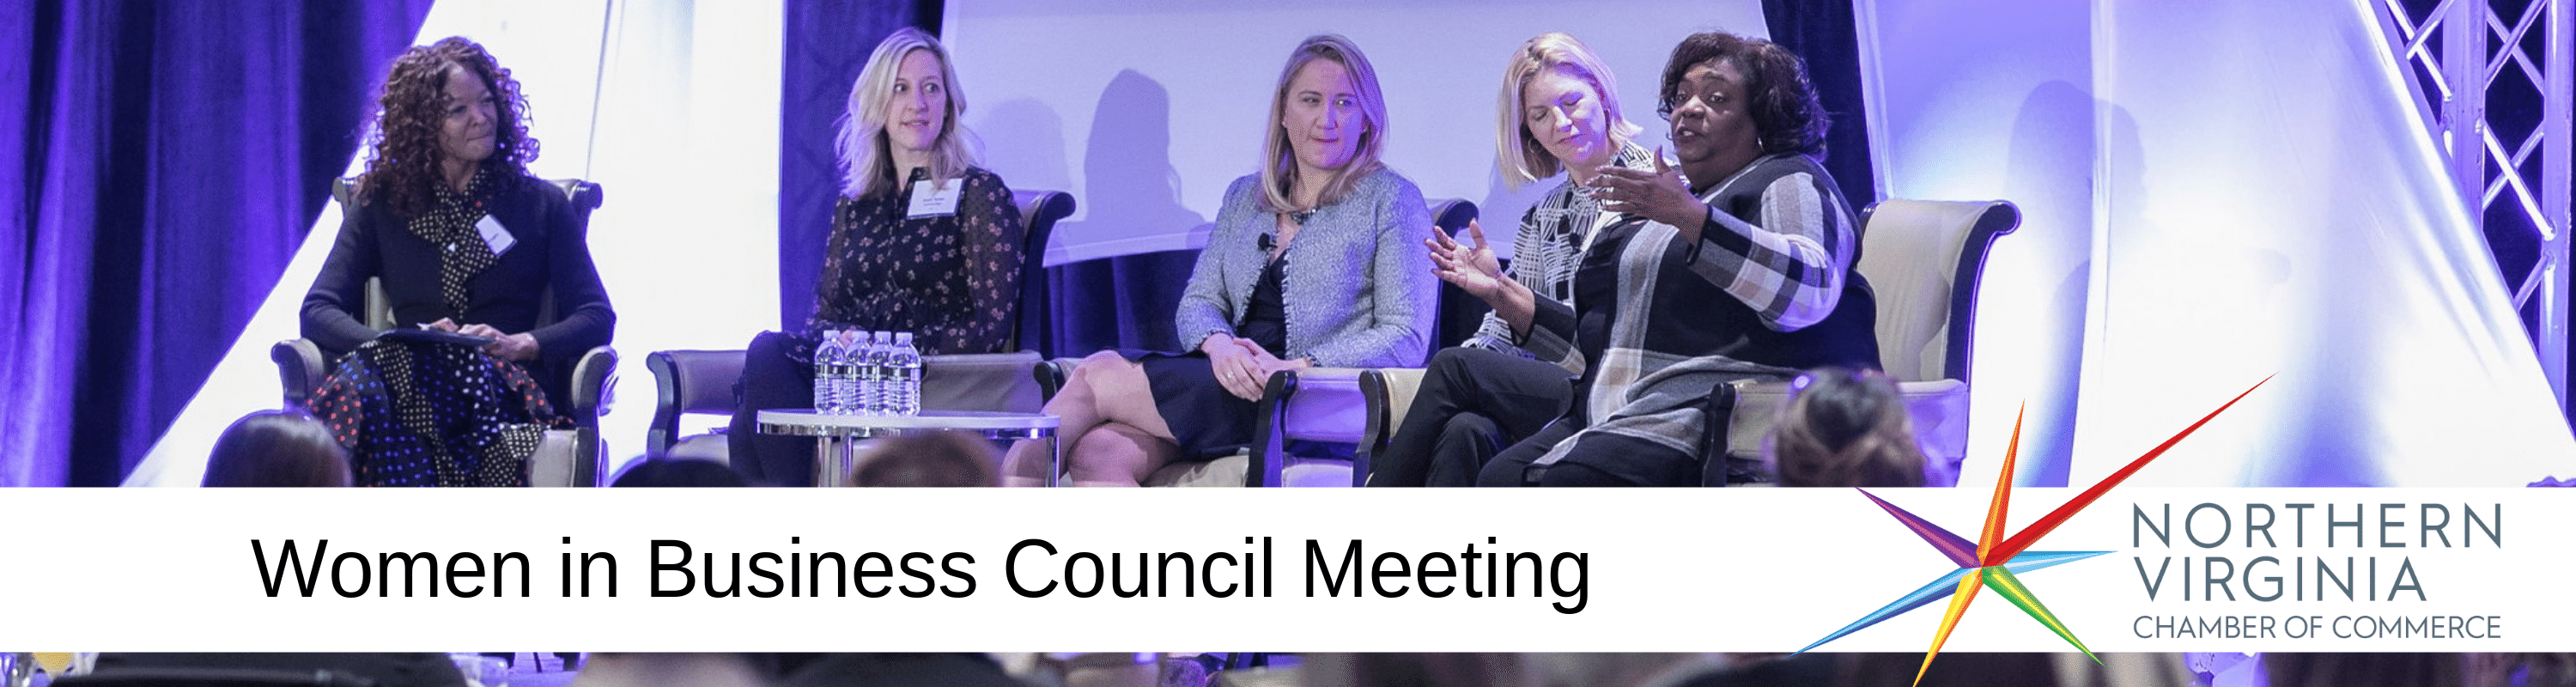 Women in Business Council Meeting